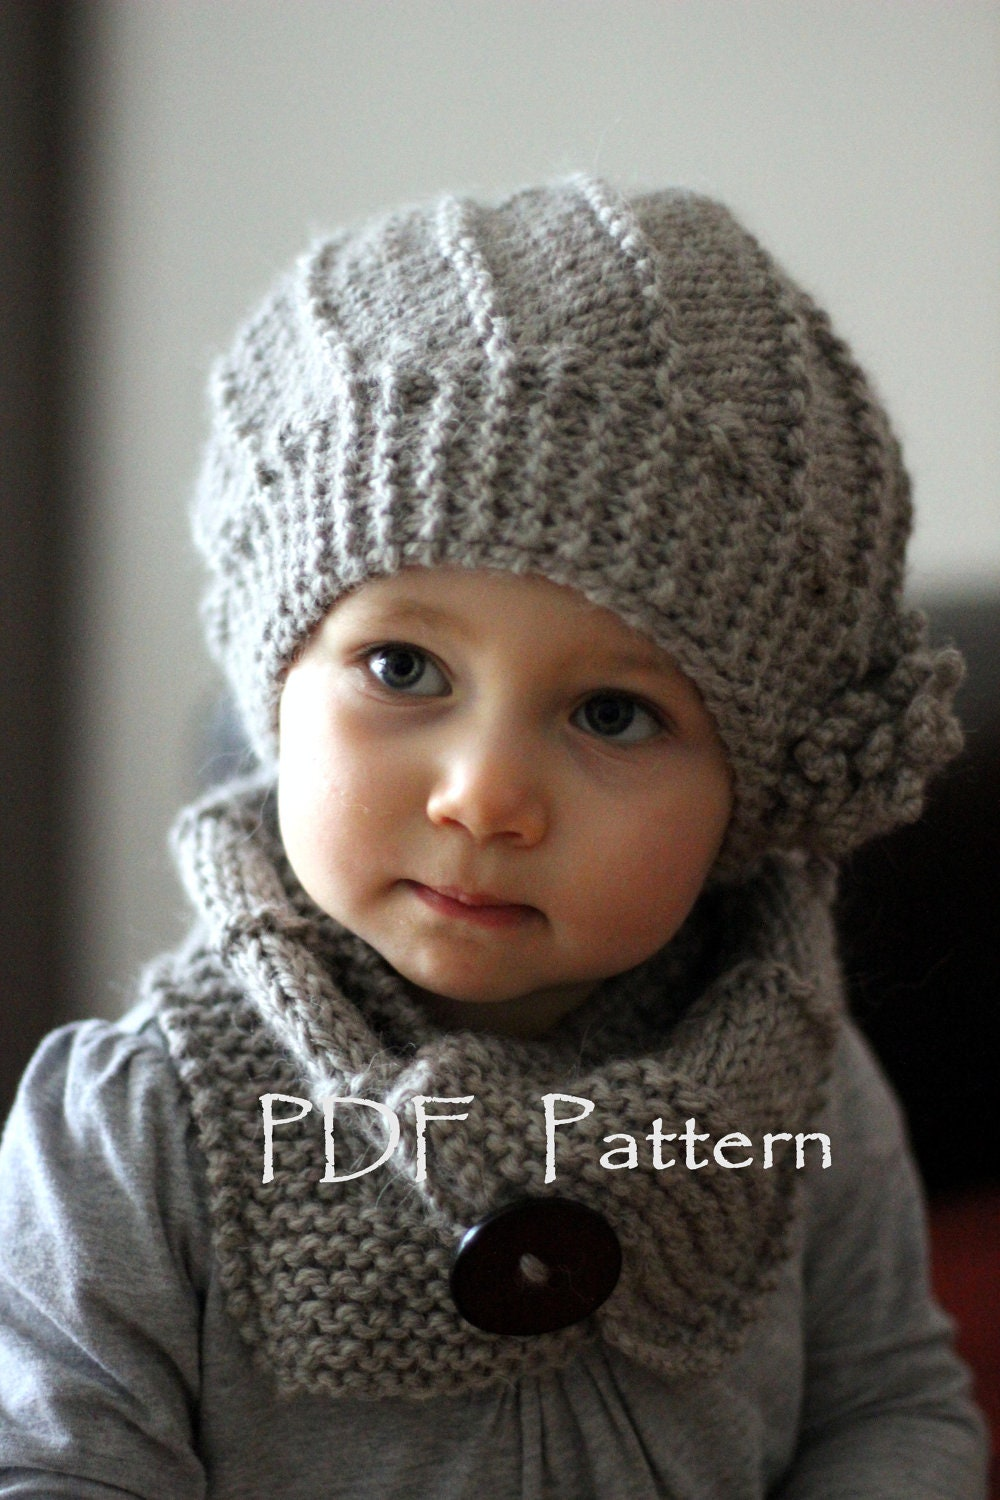 Cool Knit Patterns : PDF Knitting Pattern Hat and Cowl Set Cool Wool by KatyTricot